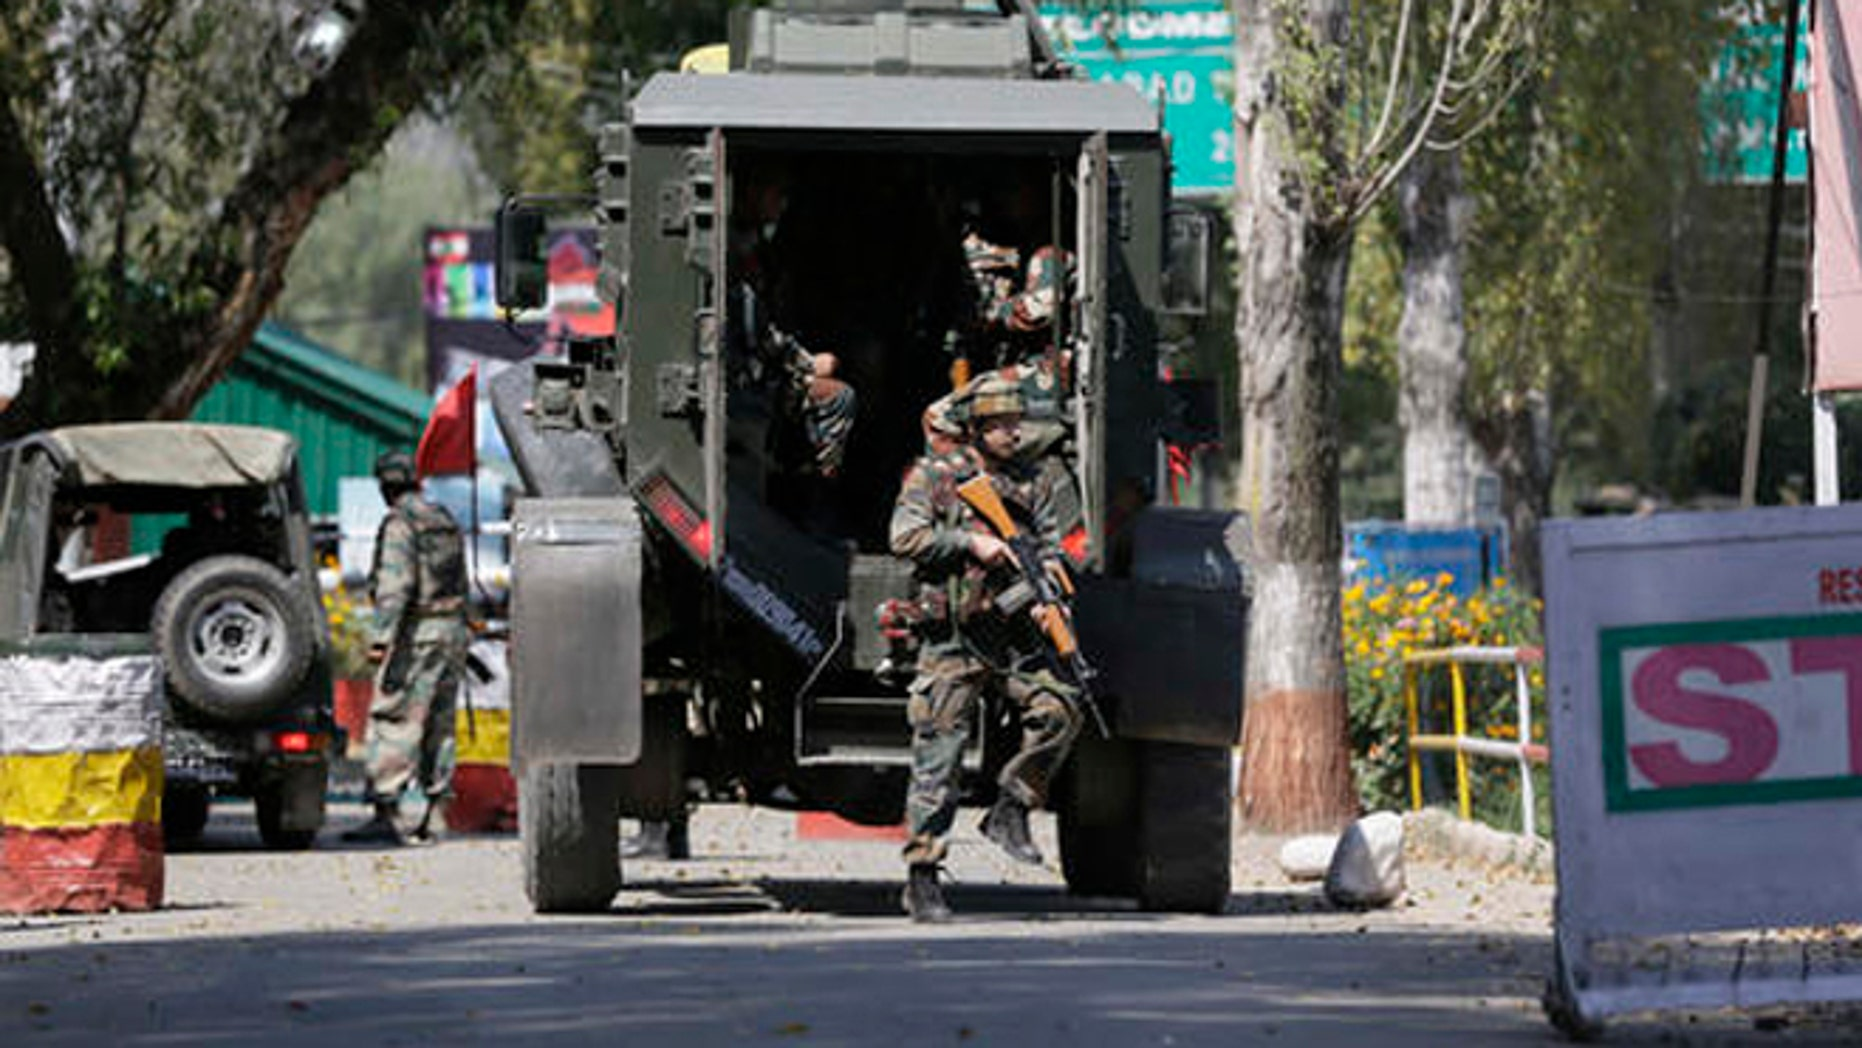 Indian army soldiers arrive at the army base which was attacked by suspected rebels in the town of Uri, west of Srinagar, Indian controlled Kashmir, Sunday.